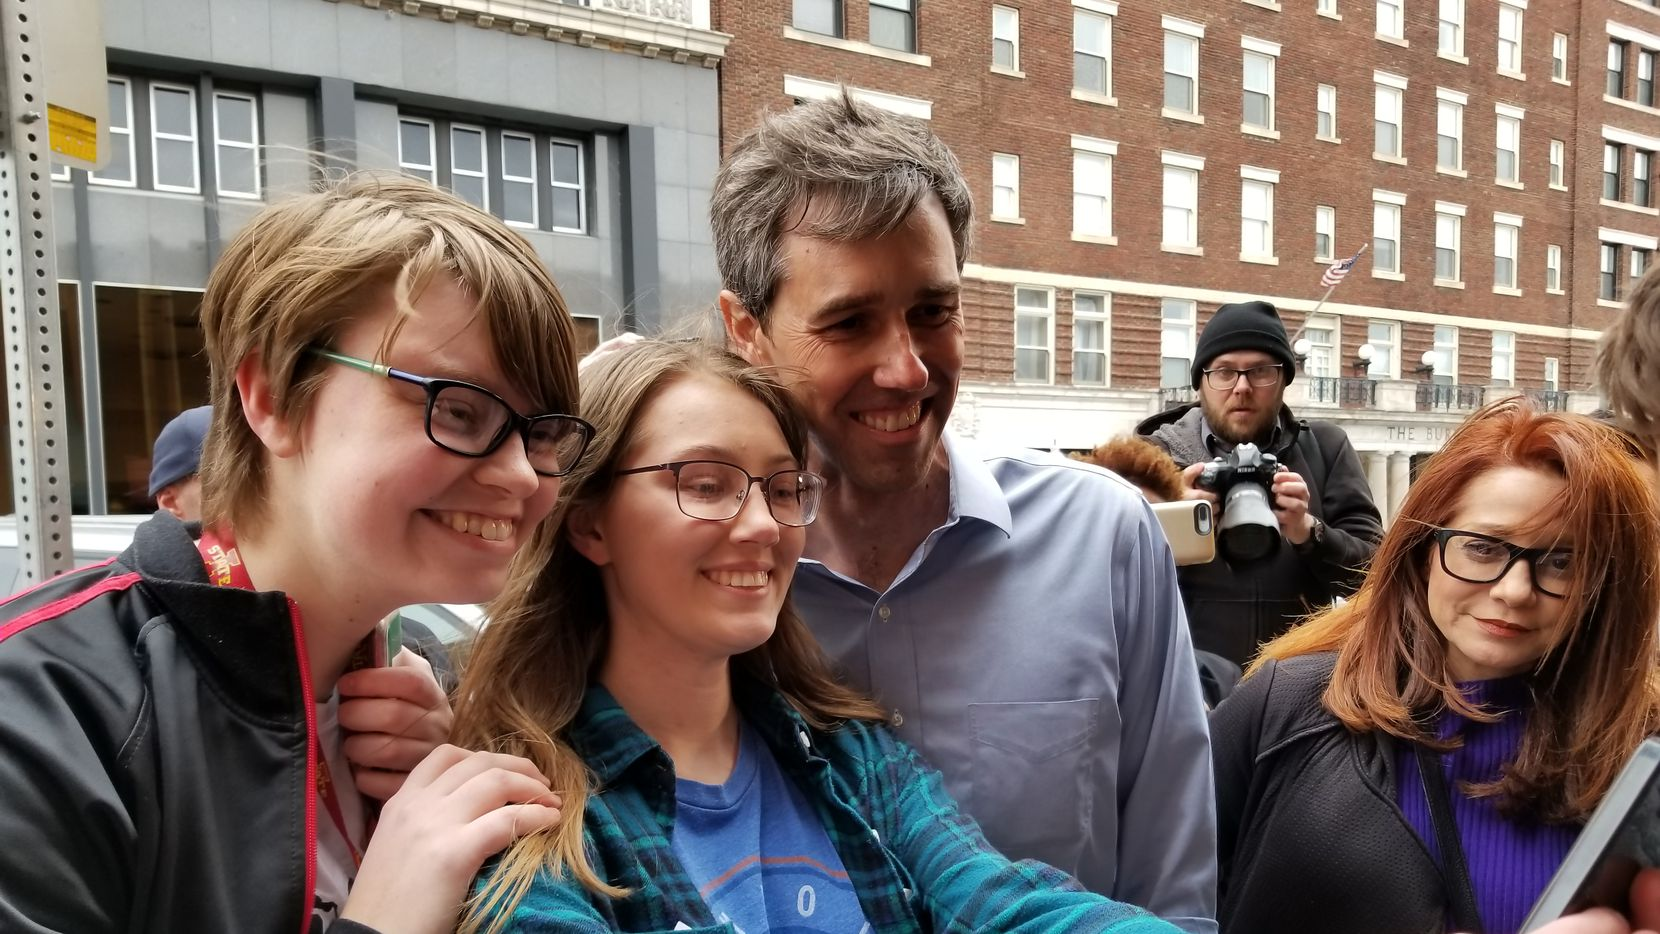 Beto O'Rourke stops for a photo after stumping in Burlington, Iowa. At right is aide Cynthia Cano.